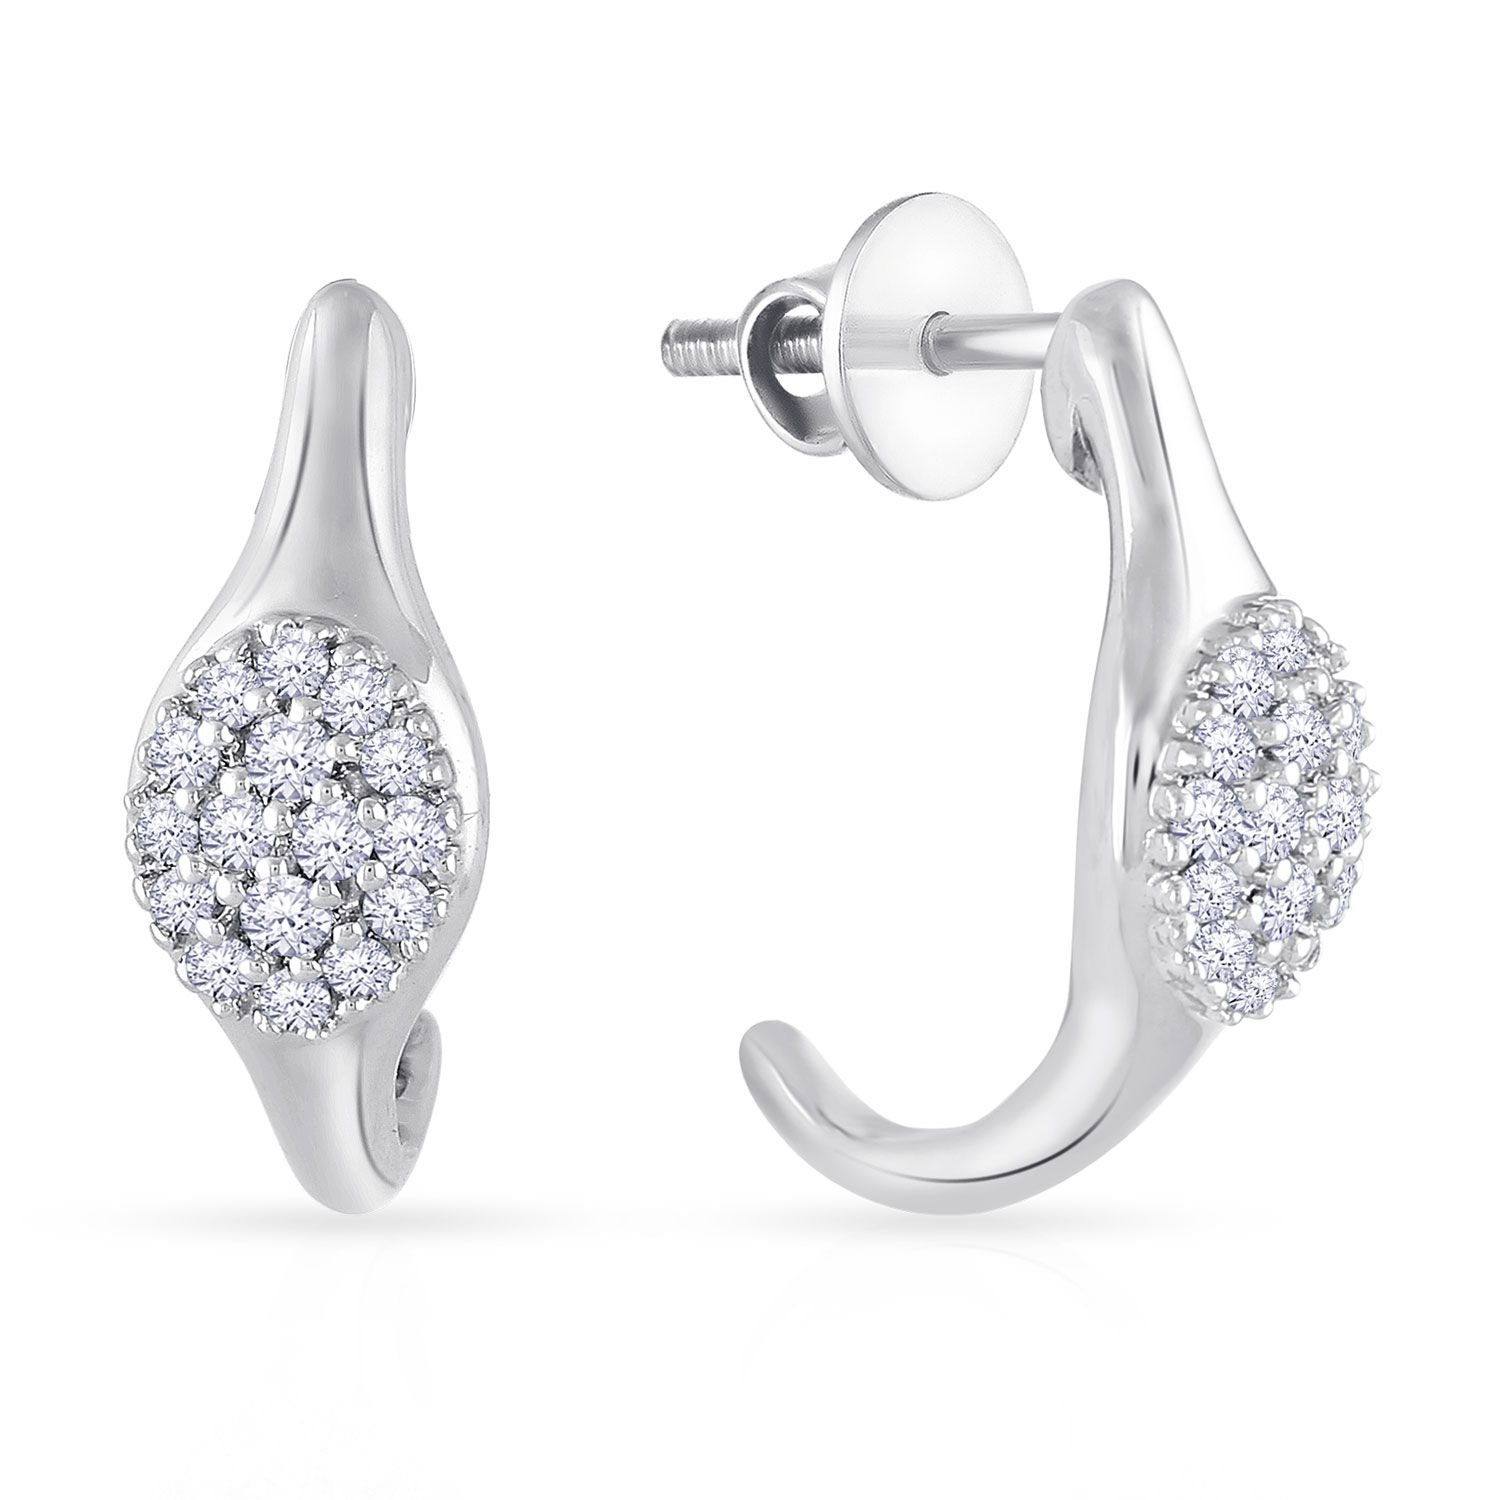 Buy Malabar Gold and Diamonds 950 Platinum Stud Earrings for Women